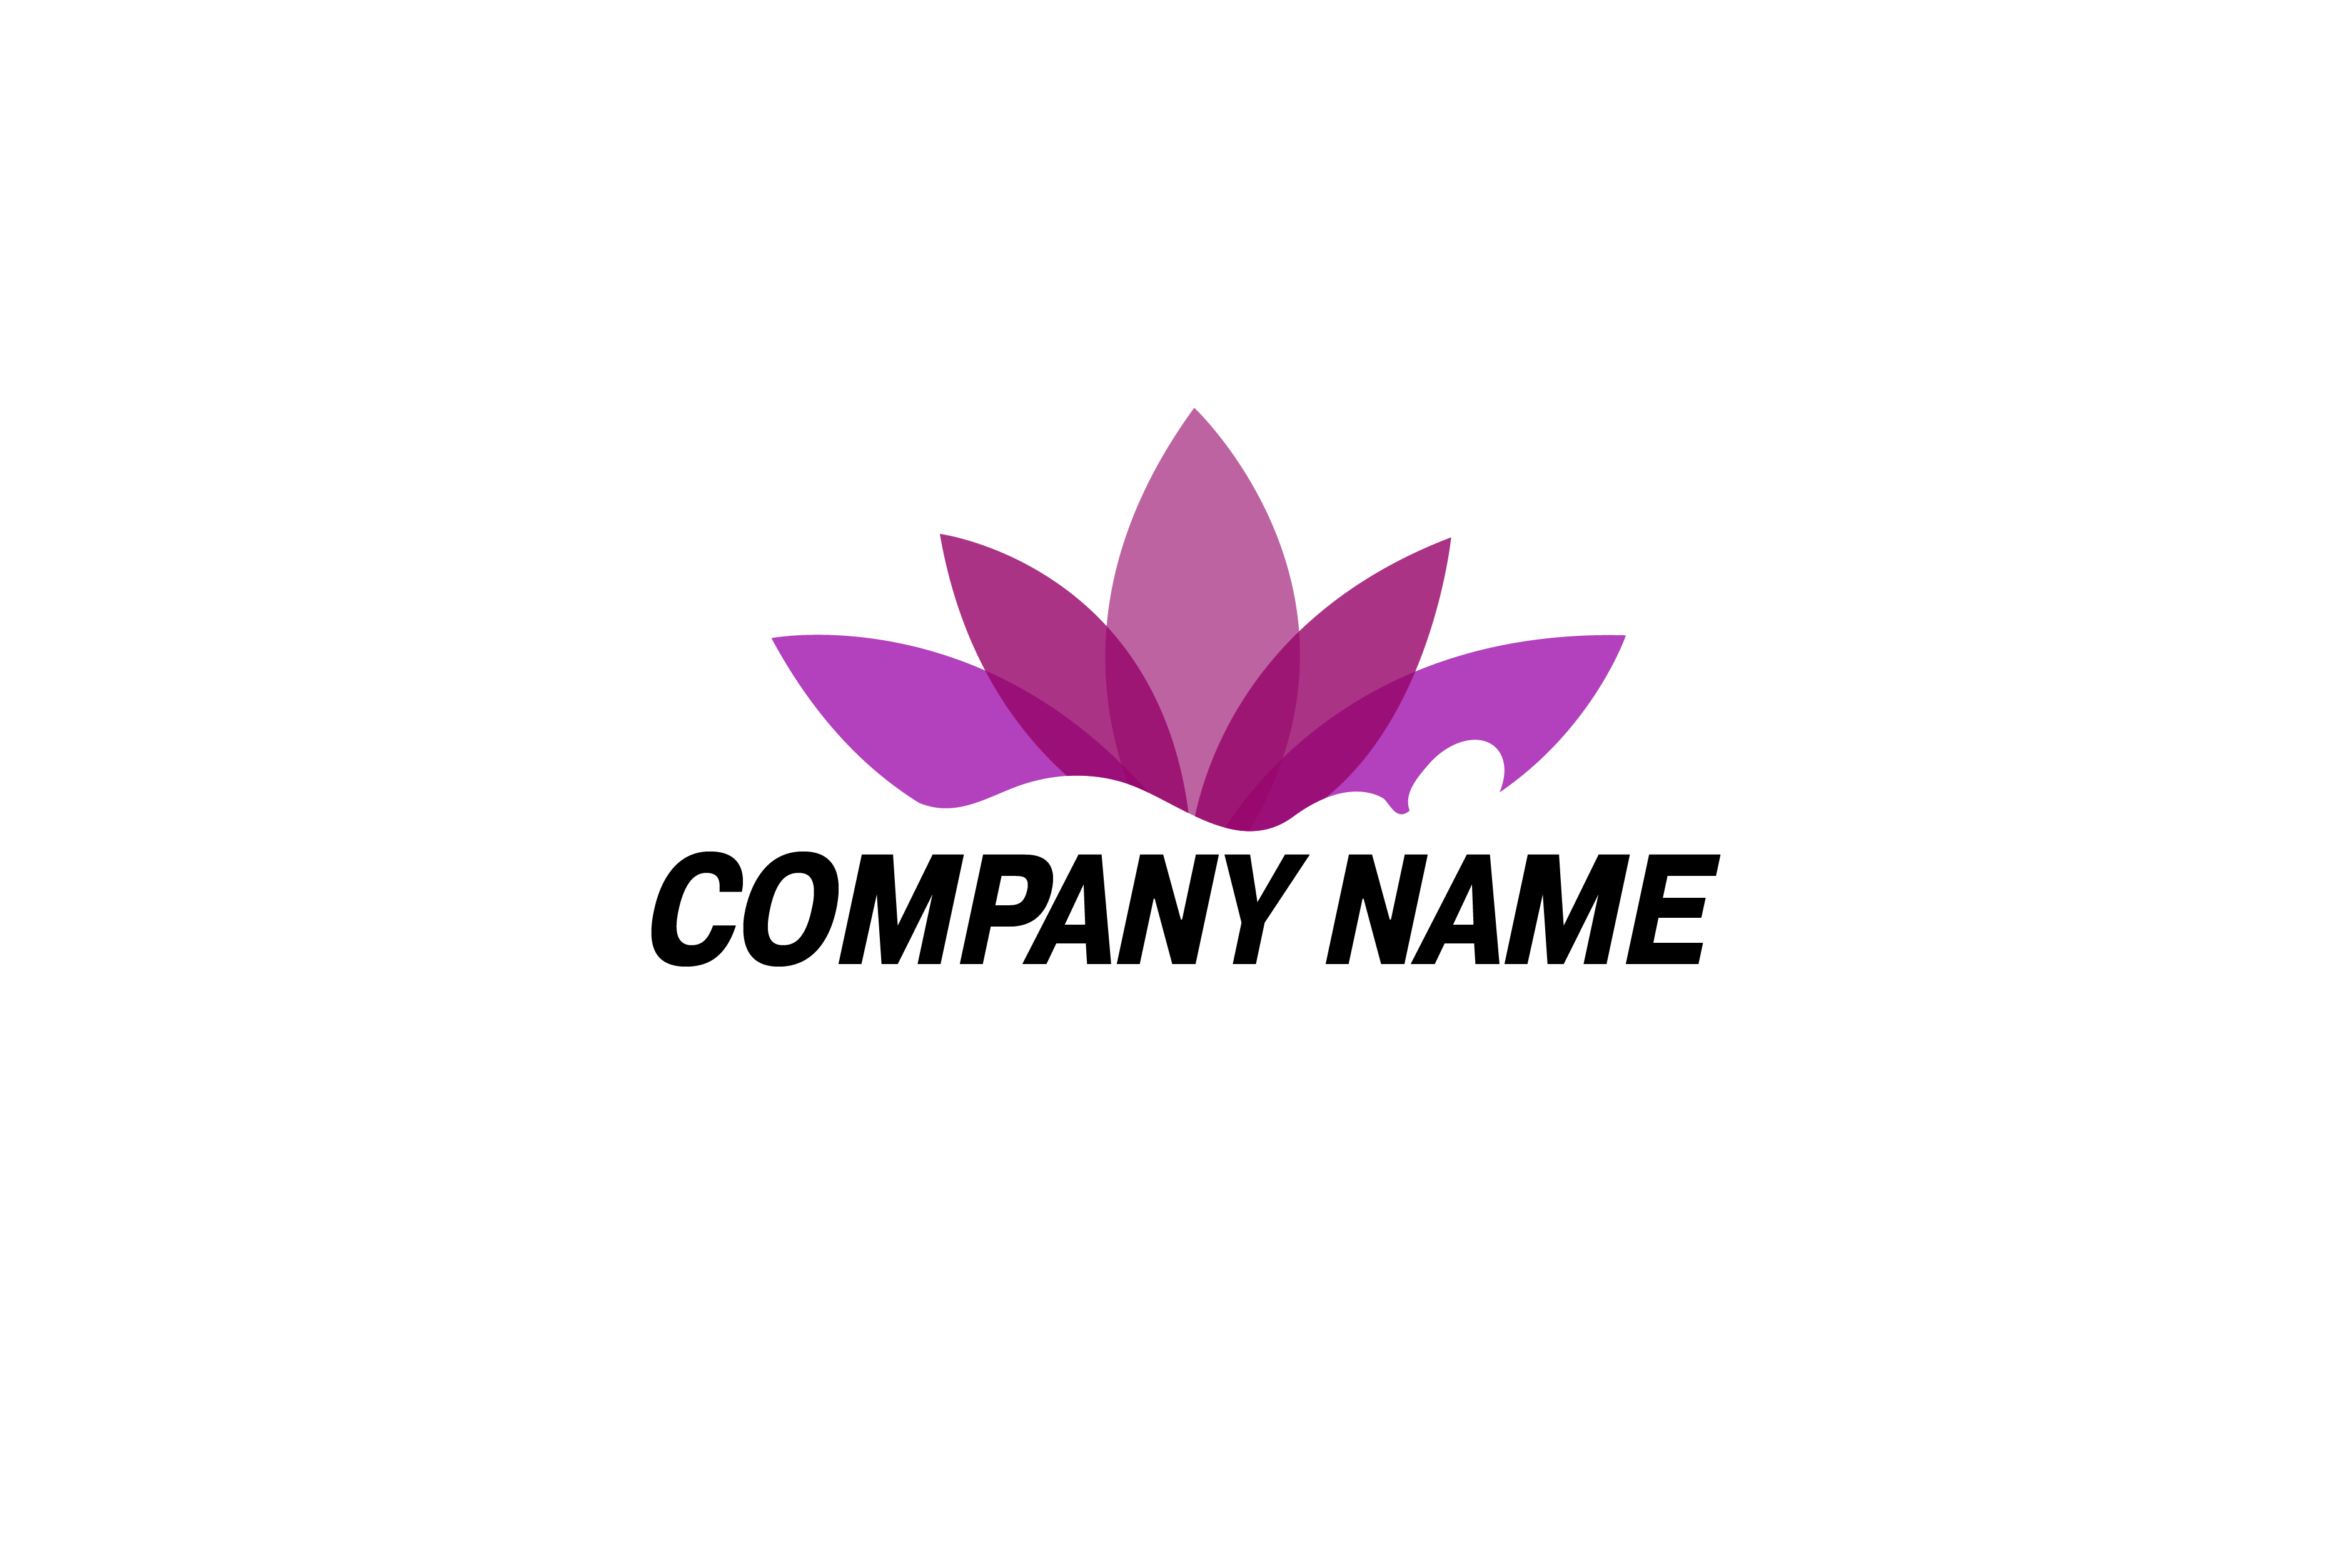 Logo Design by brands_in - Entry No. 2 in the Logo Design Contest Artistic Logo Design for my personal massage therapy business.